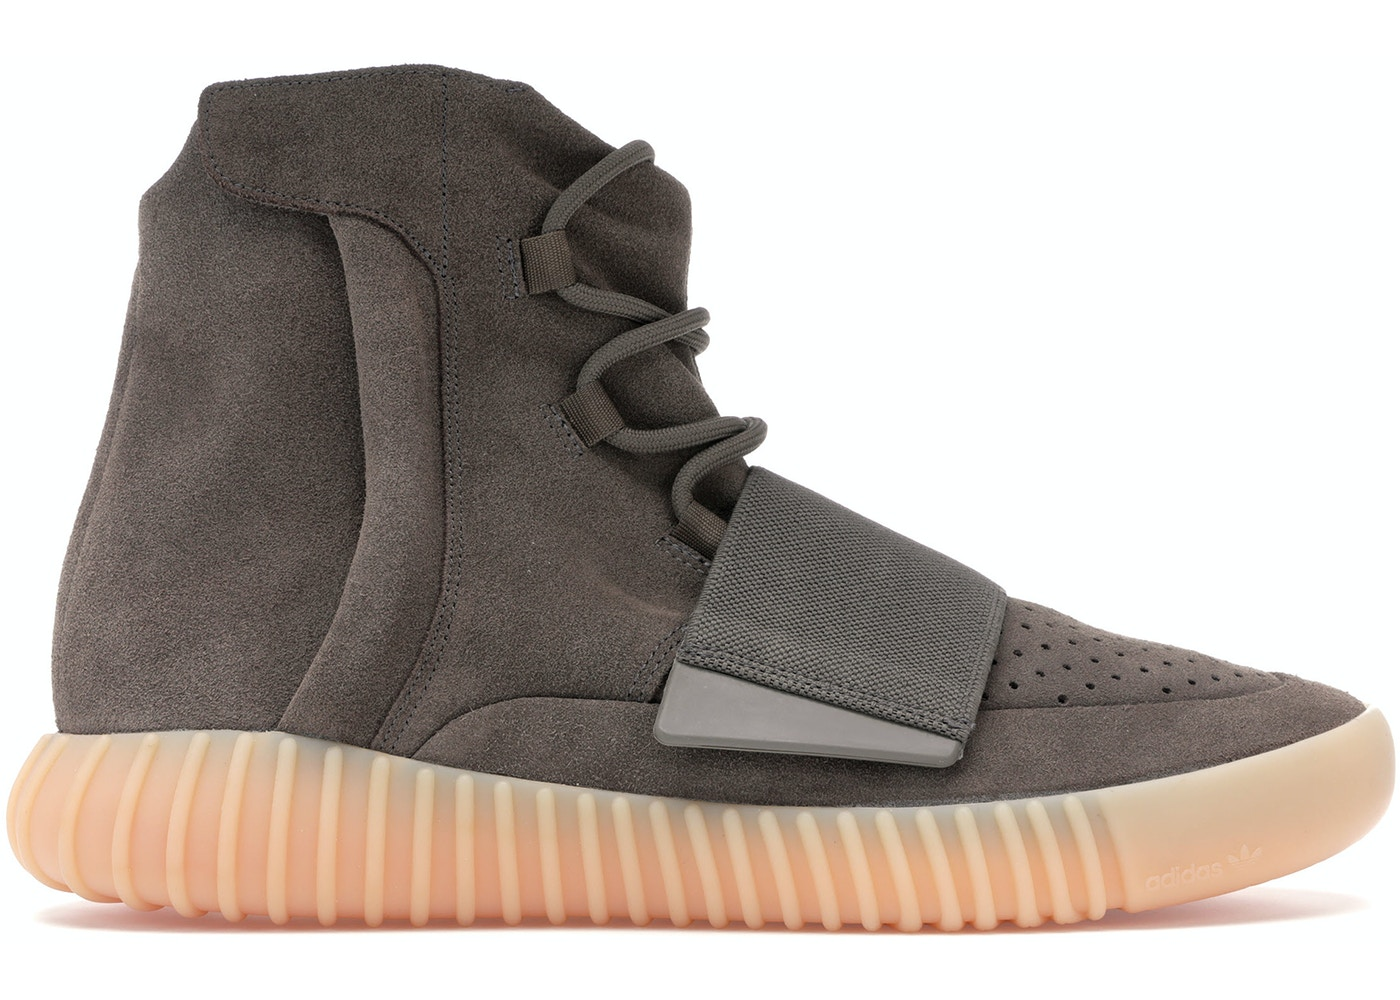 check out 6bb8e faf42 Bid. Sneaker Madness adidas Yeezy Boost 750 ...